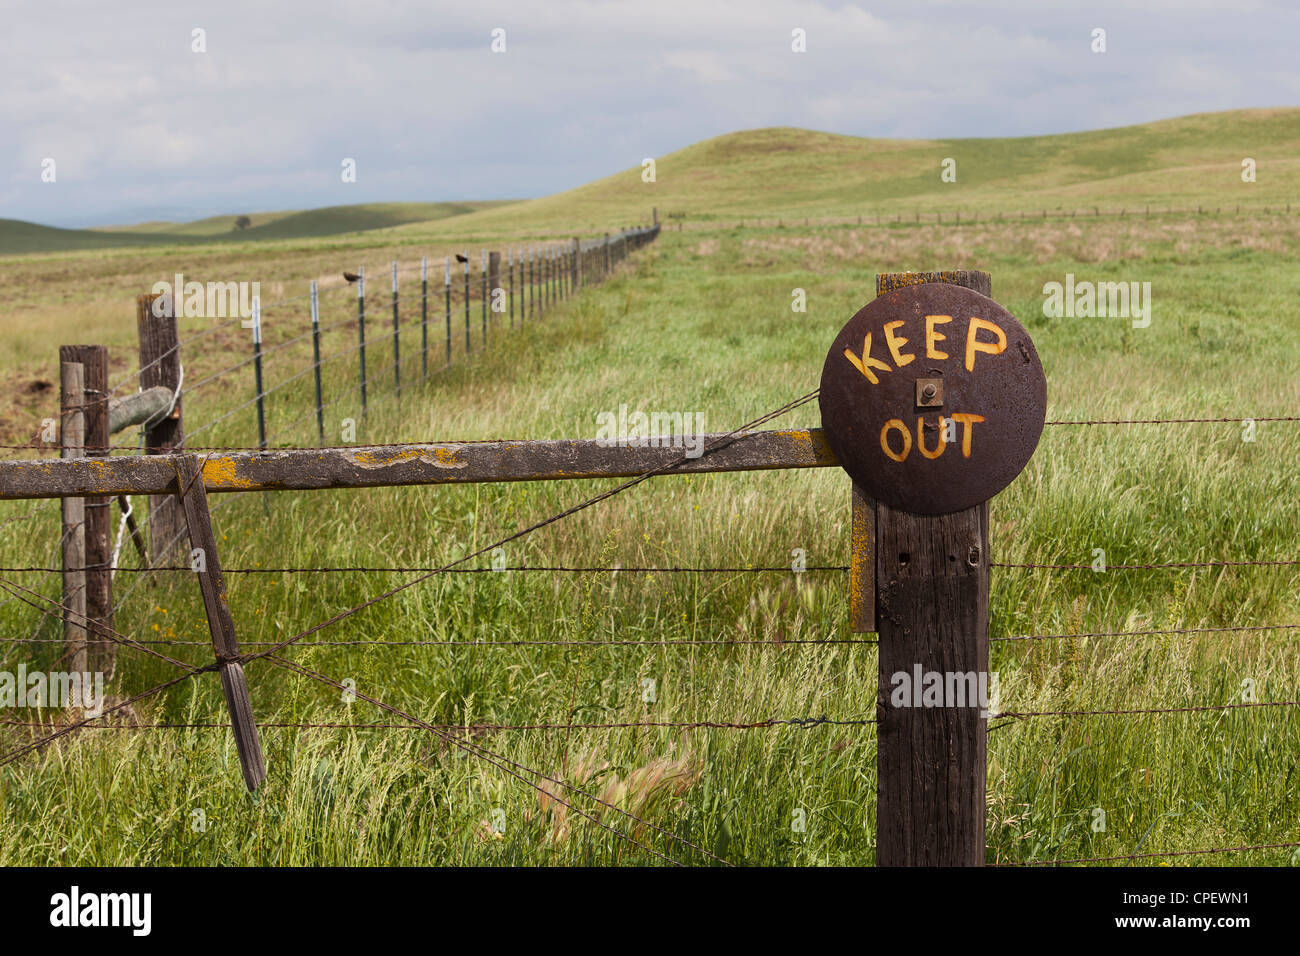 Old Keep Out sign in rural America - Stock Image